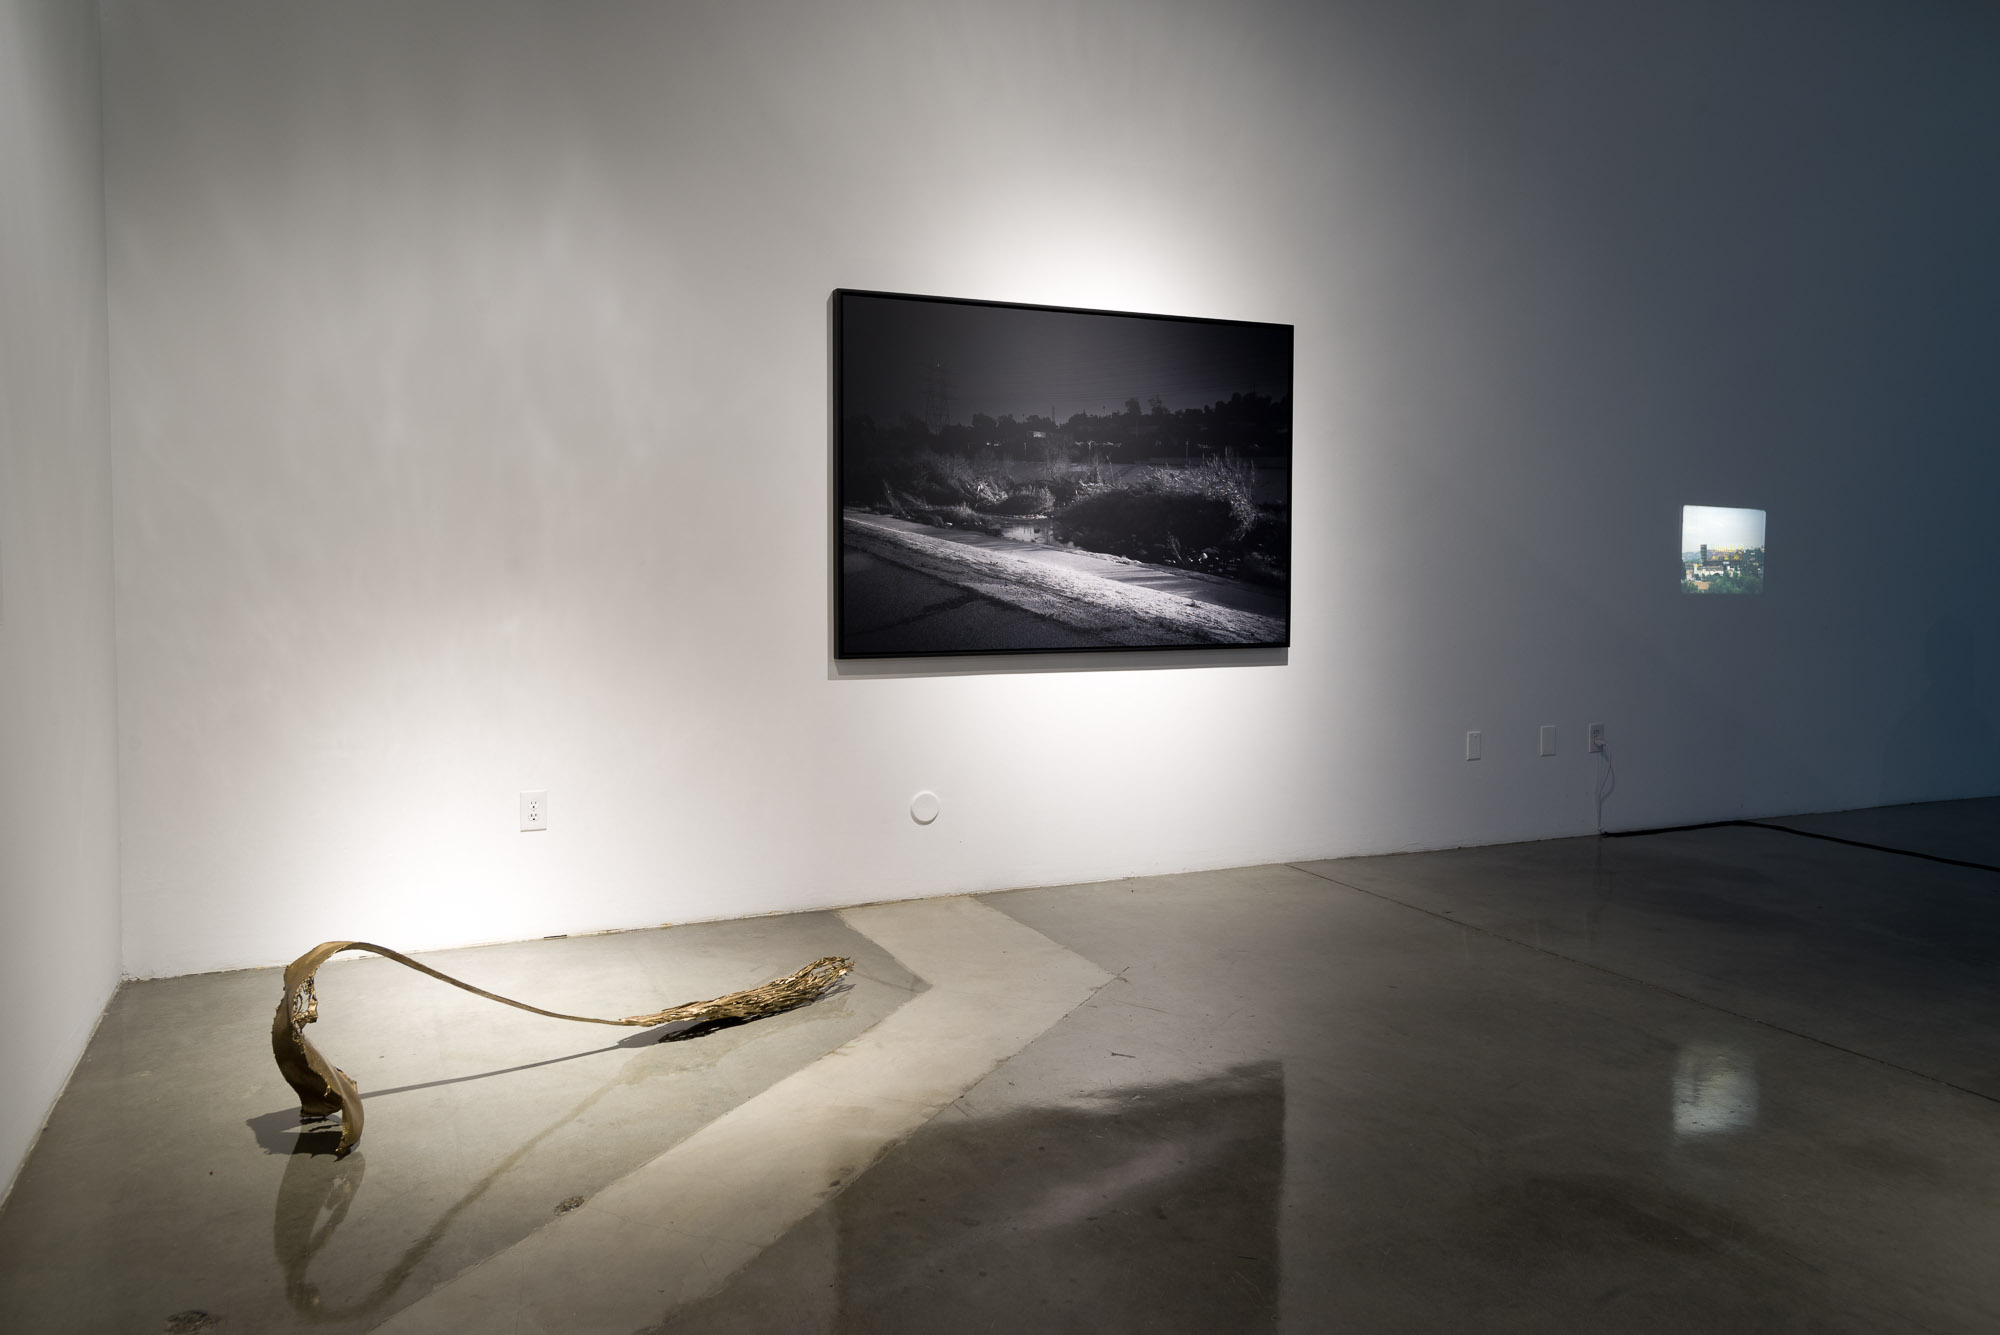 Installation view, Staging Los Angeles: Reality, Fantasy, and the Space Between, USC Roski School of Art and Design, Los Angeles, CA, November 2015